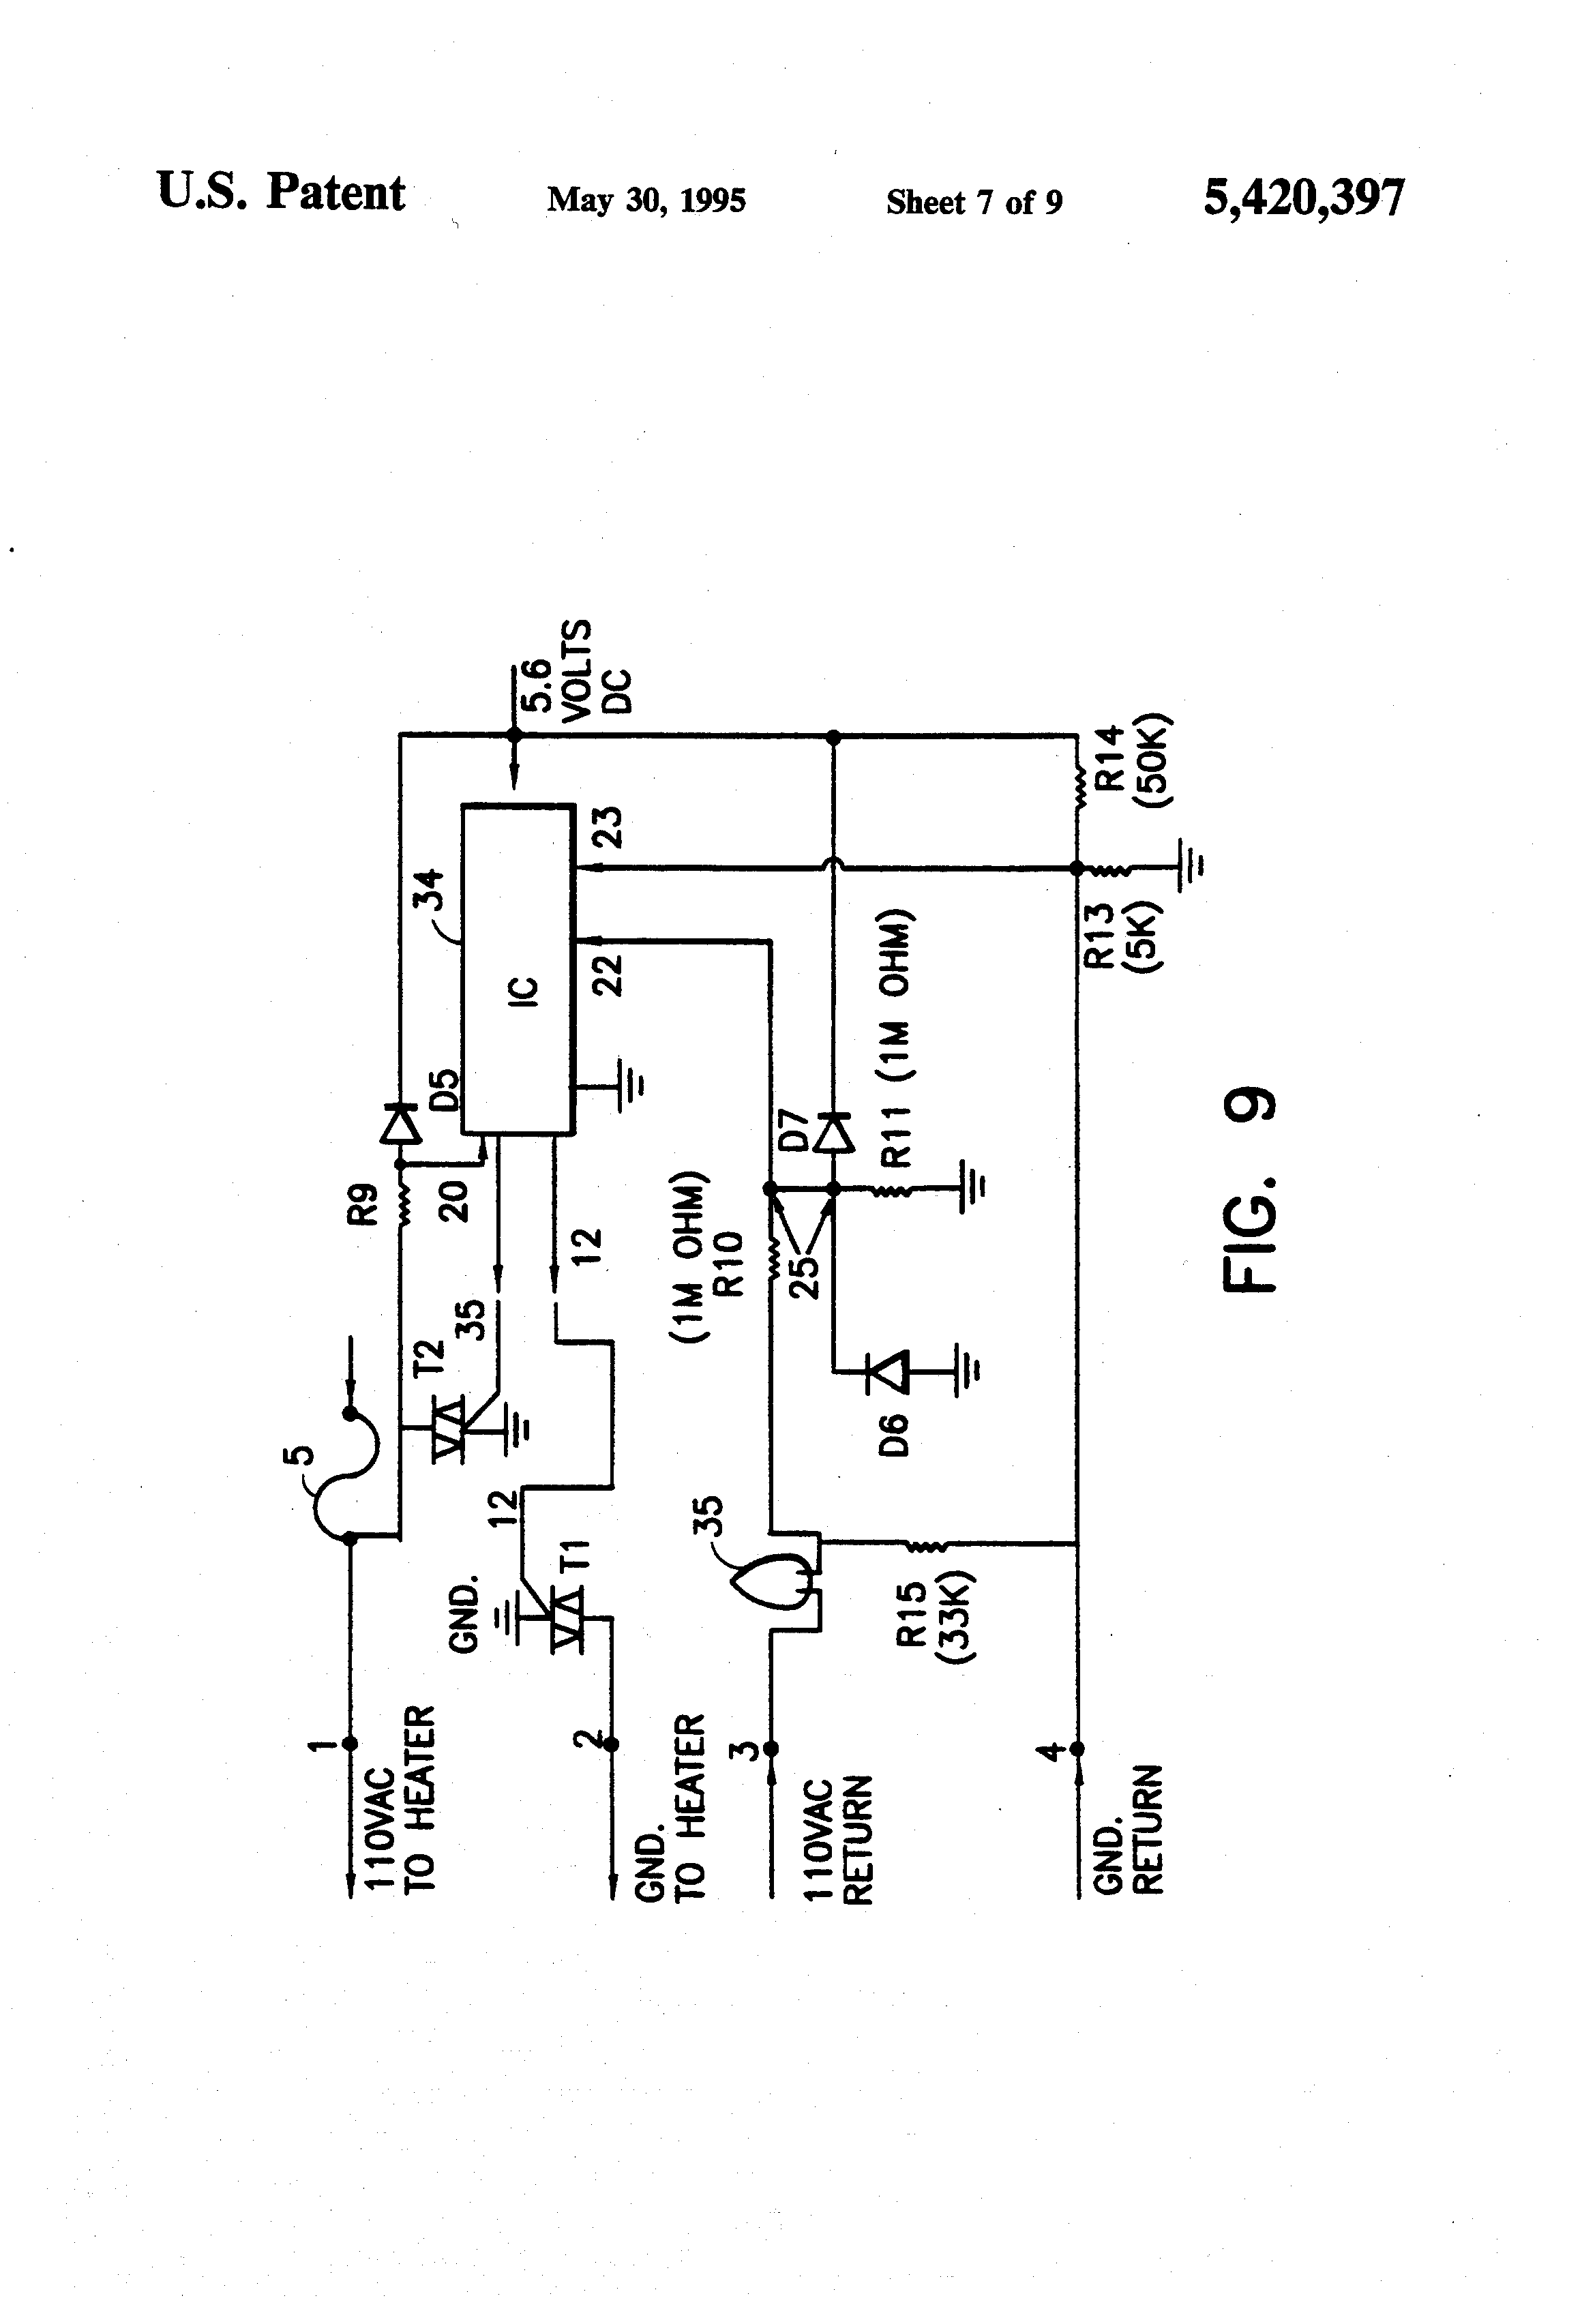 Patent Us5420397 - Control Device And Safety Circuit For Heating Pads With Ptc Heater